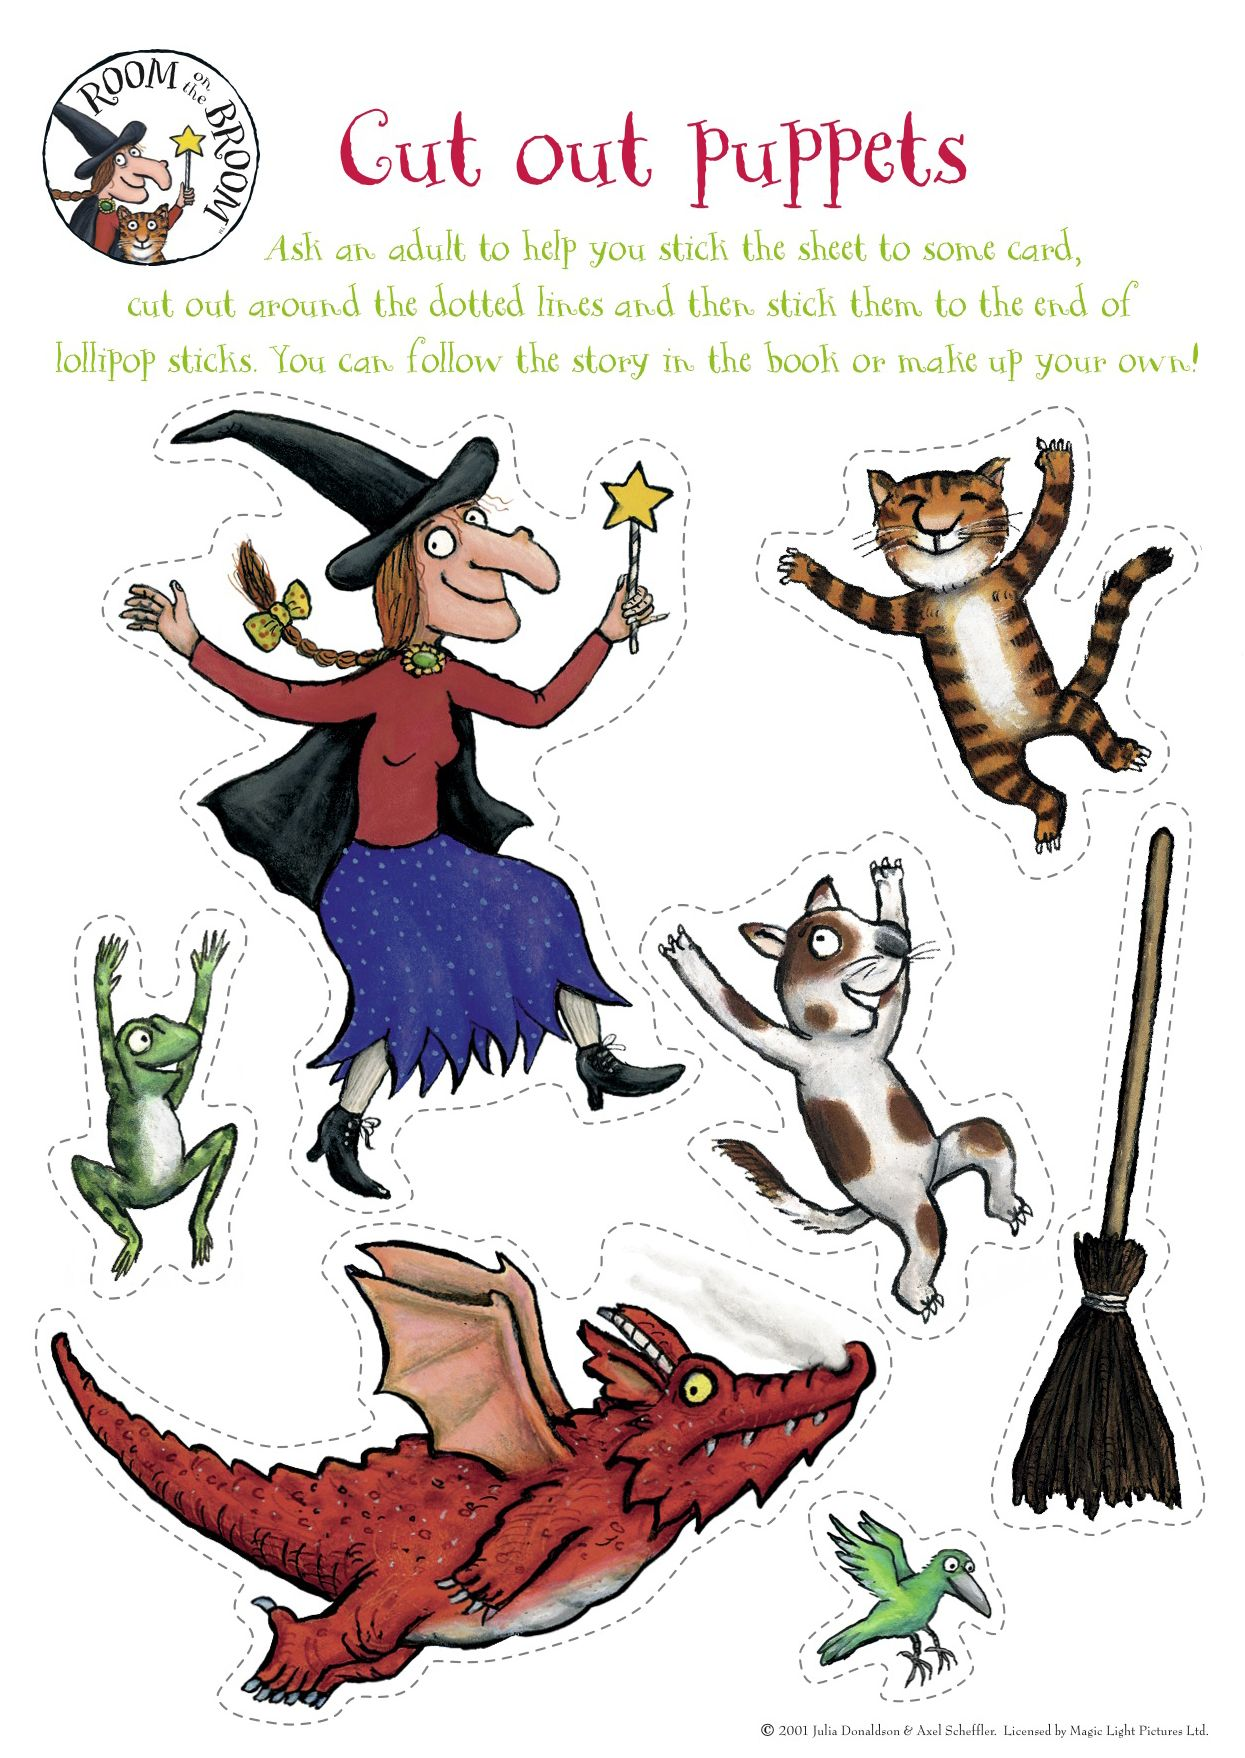 Room on the Broom cut out puppets! Bring the amazing story to life ...